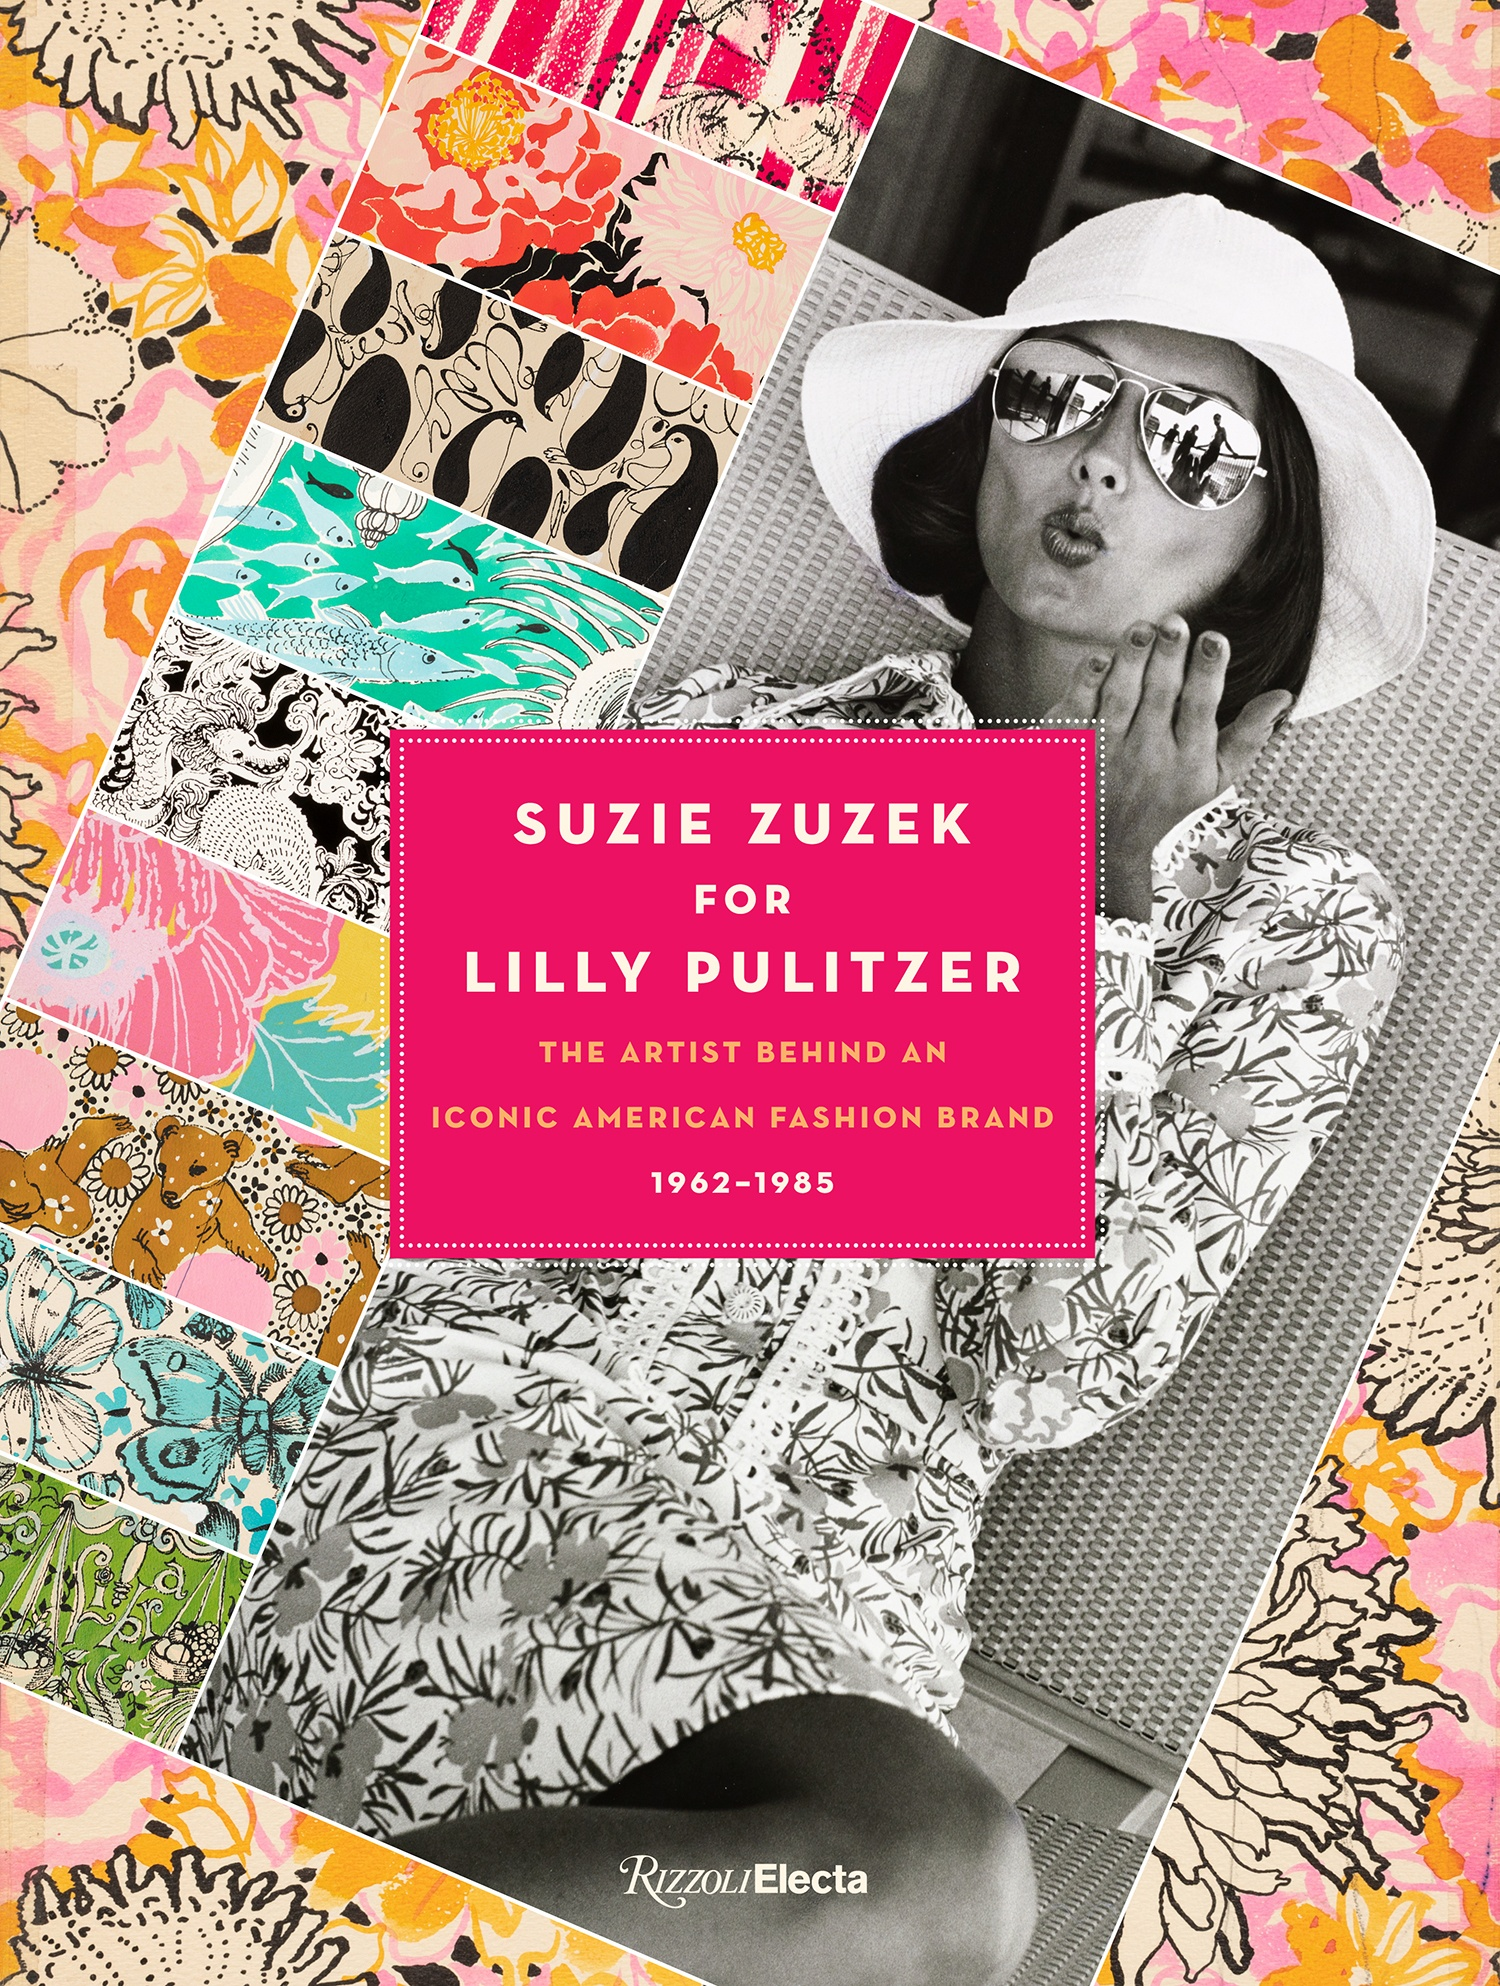 The cover of Suzie Zuzek for Lilly Pulitzer: The Artist Behind an Iconic American Fashion Brand 1962-1985 (Rizzoli).